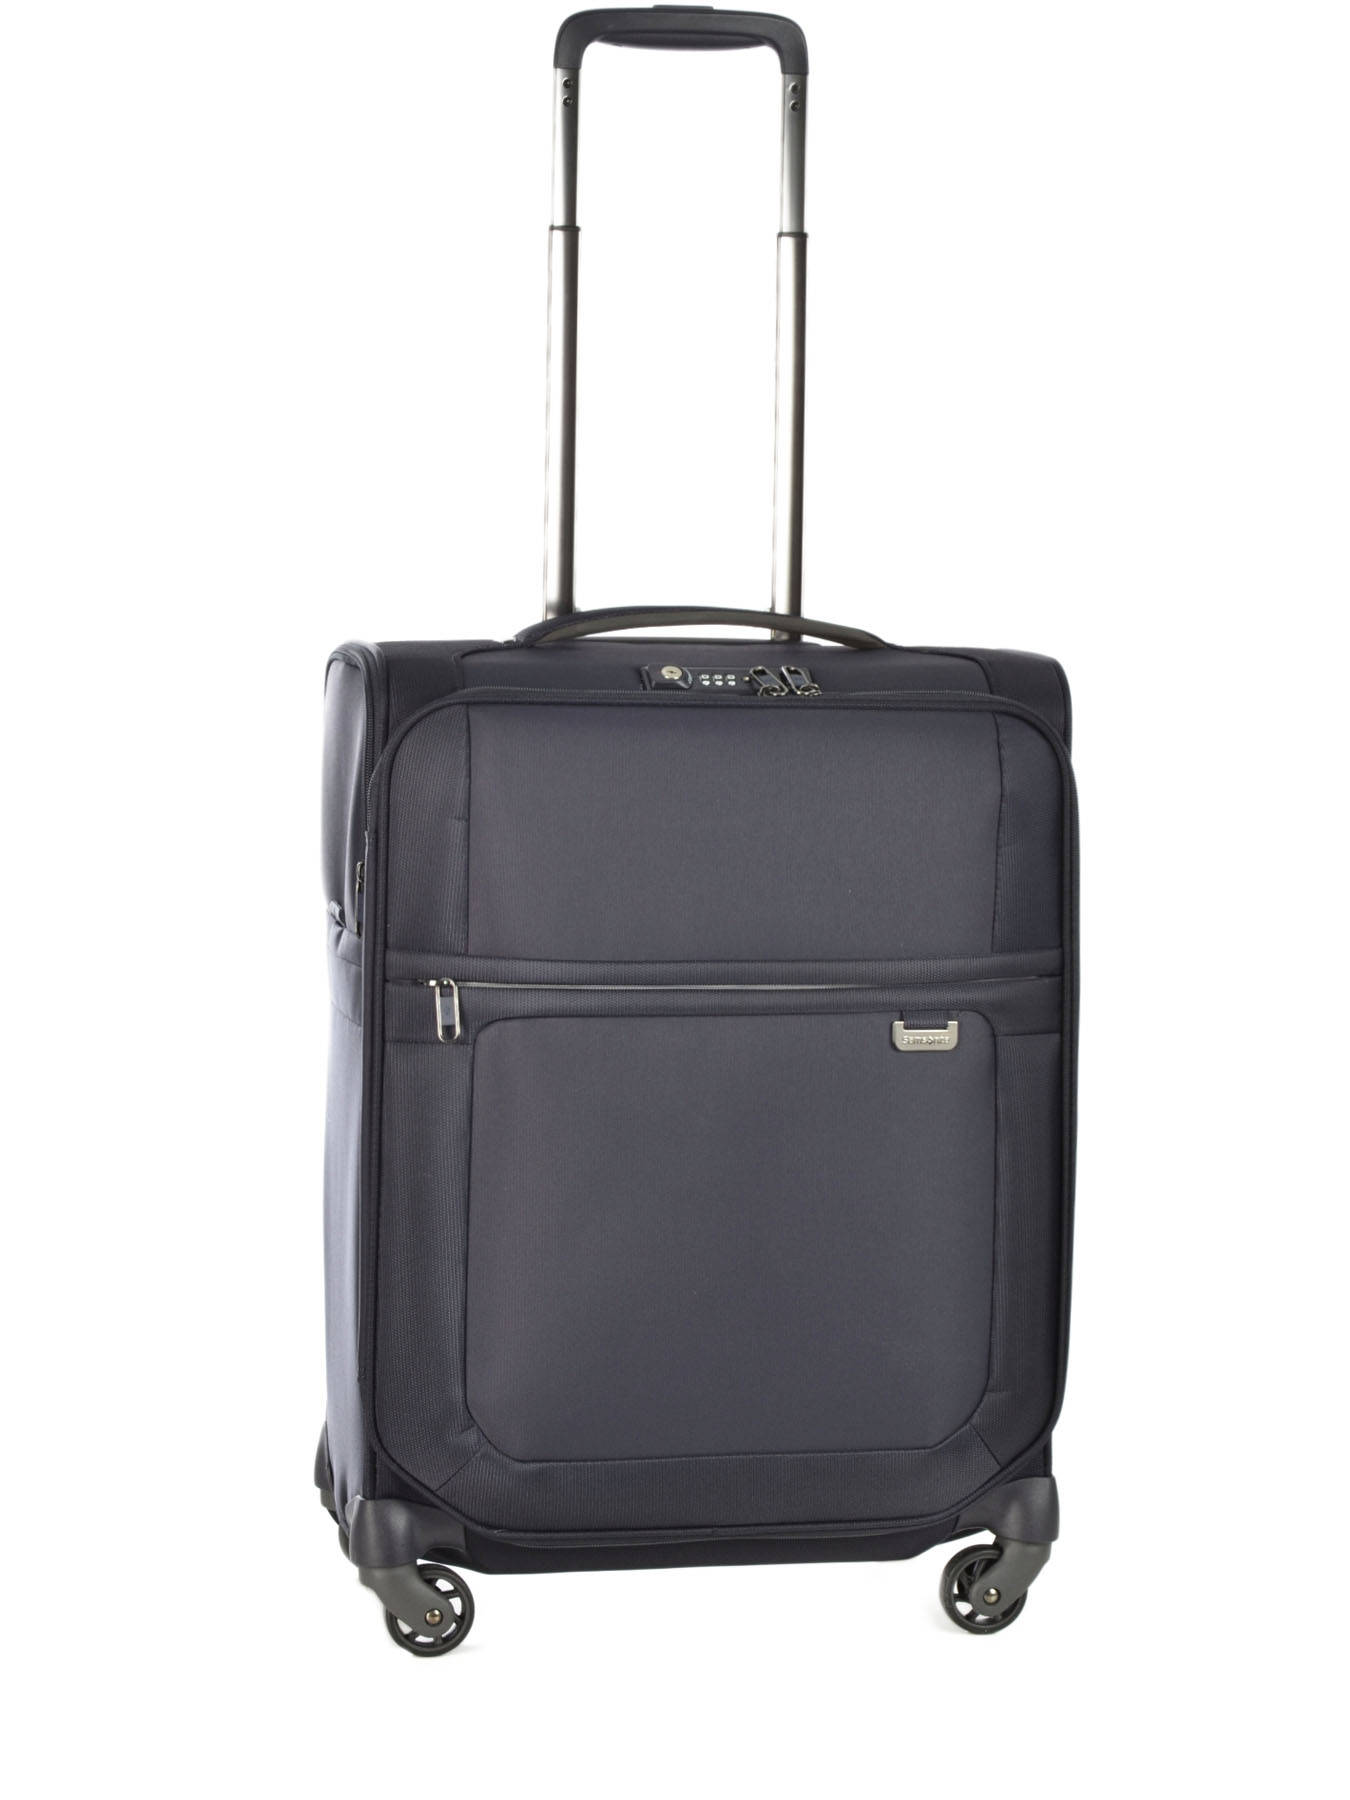 Samsonite Valise extensible cabine 4 roues souple Uplite - 55cm Rouge